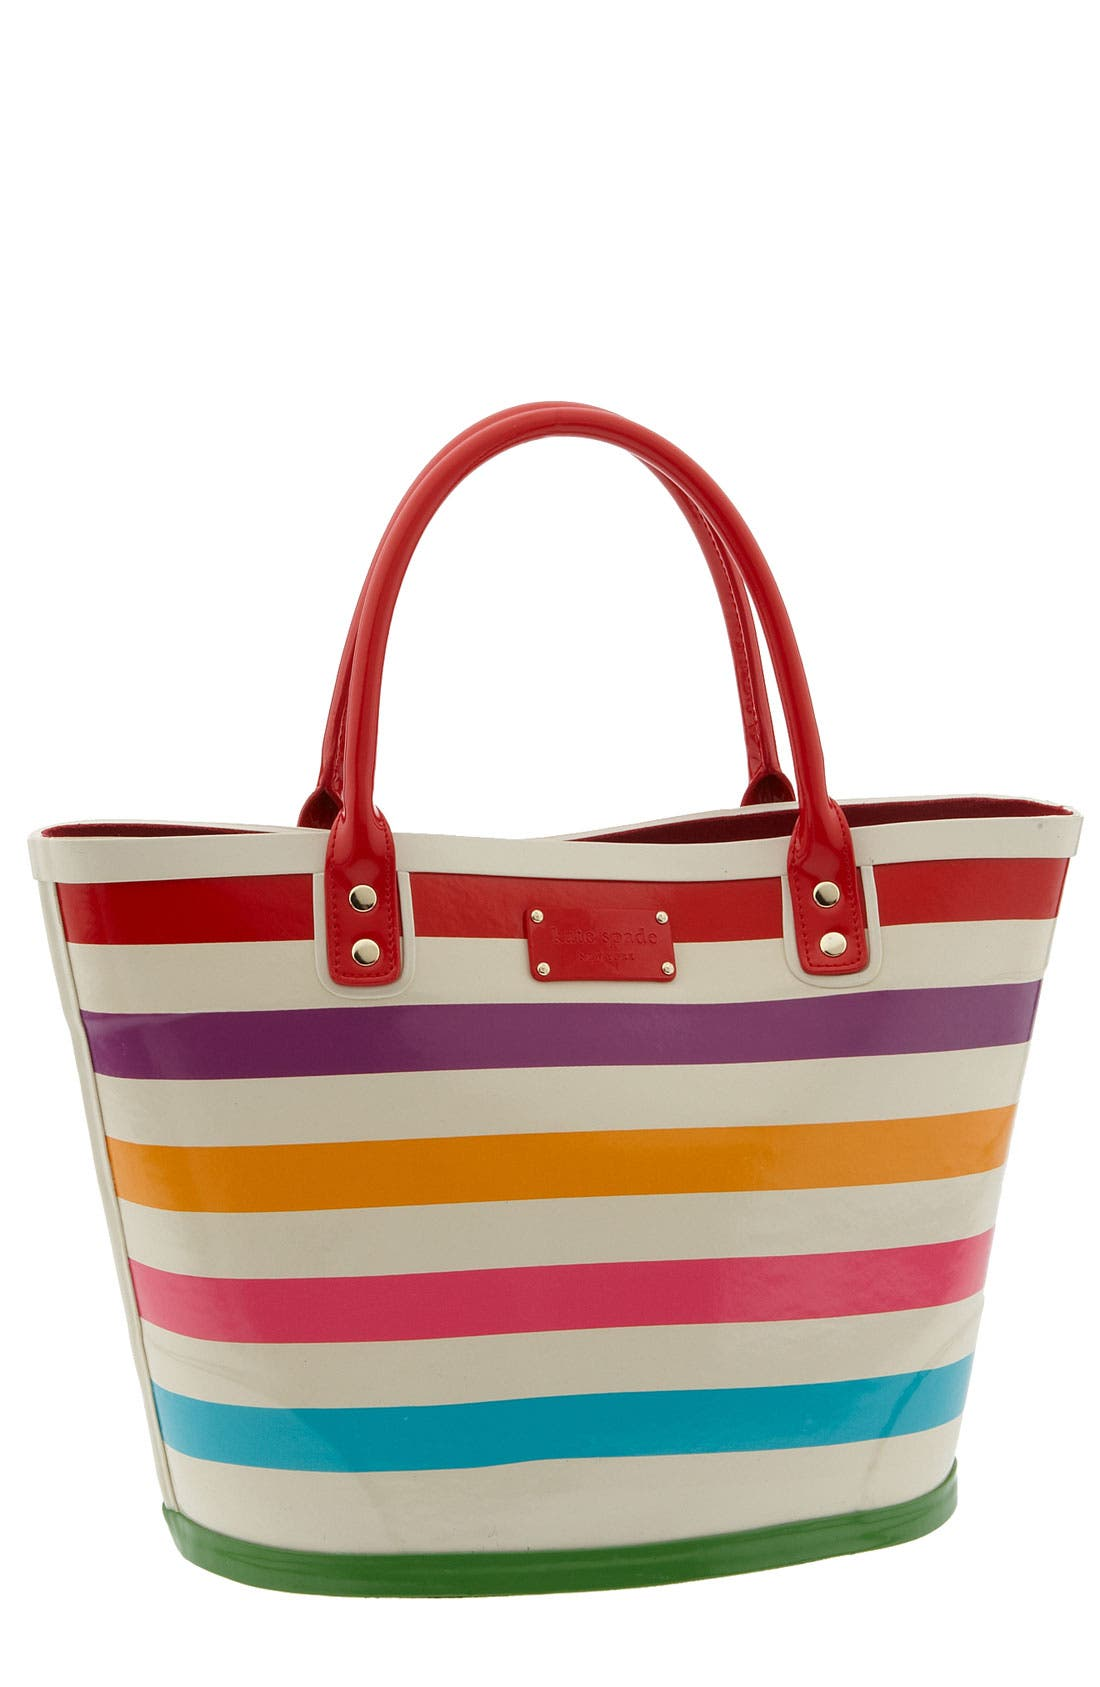 Alternate Image 1 Selected - kate spade 'wellie magee' rubber tote